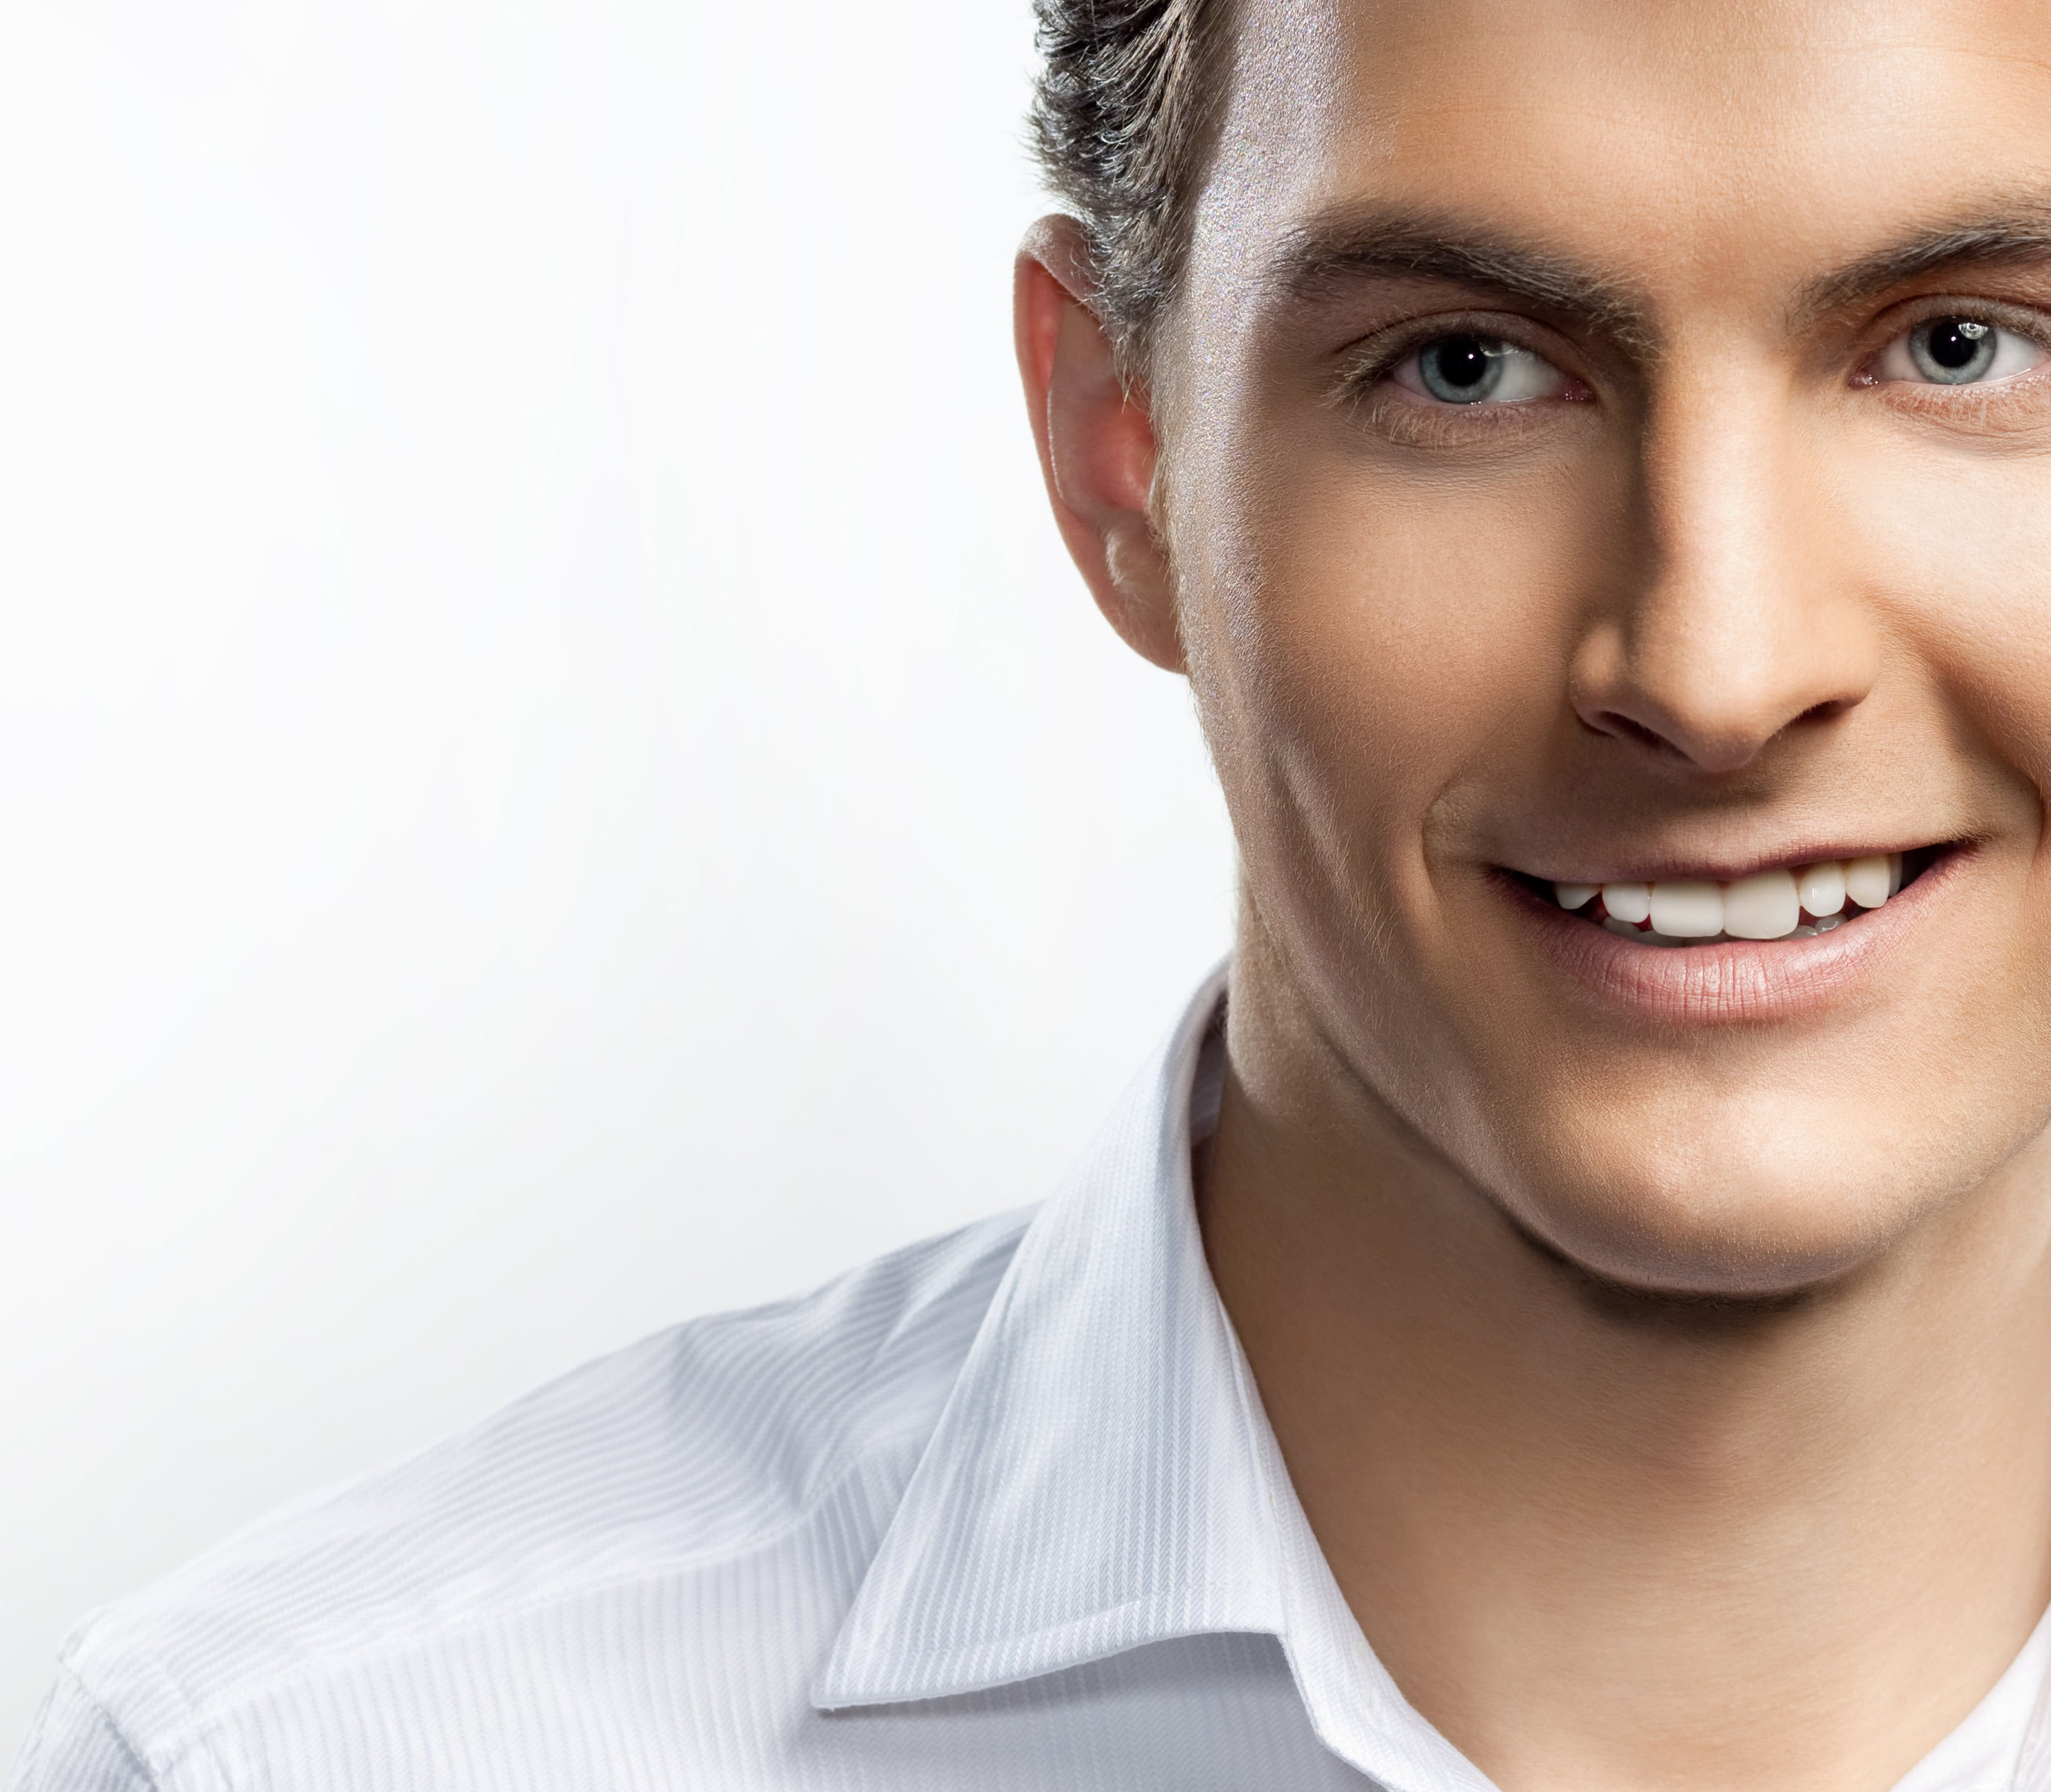 Eyelid-Surgery-for-Men-min Sculptra for men in Scottsdale